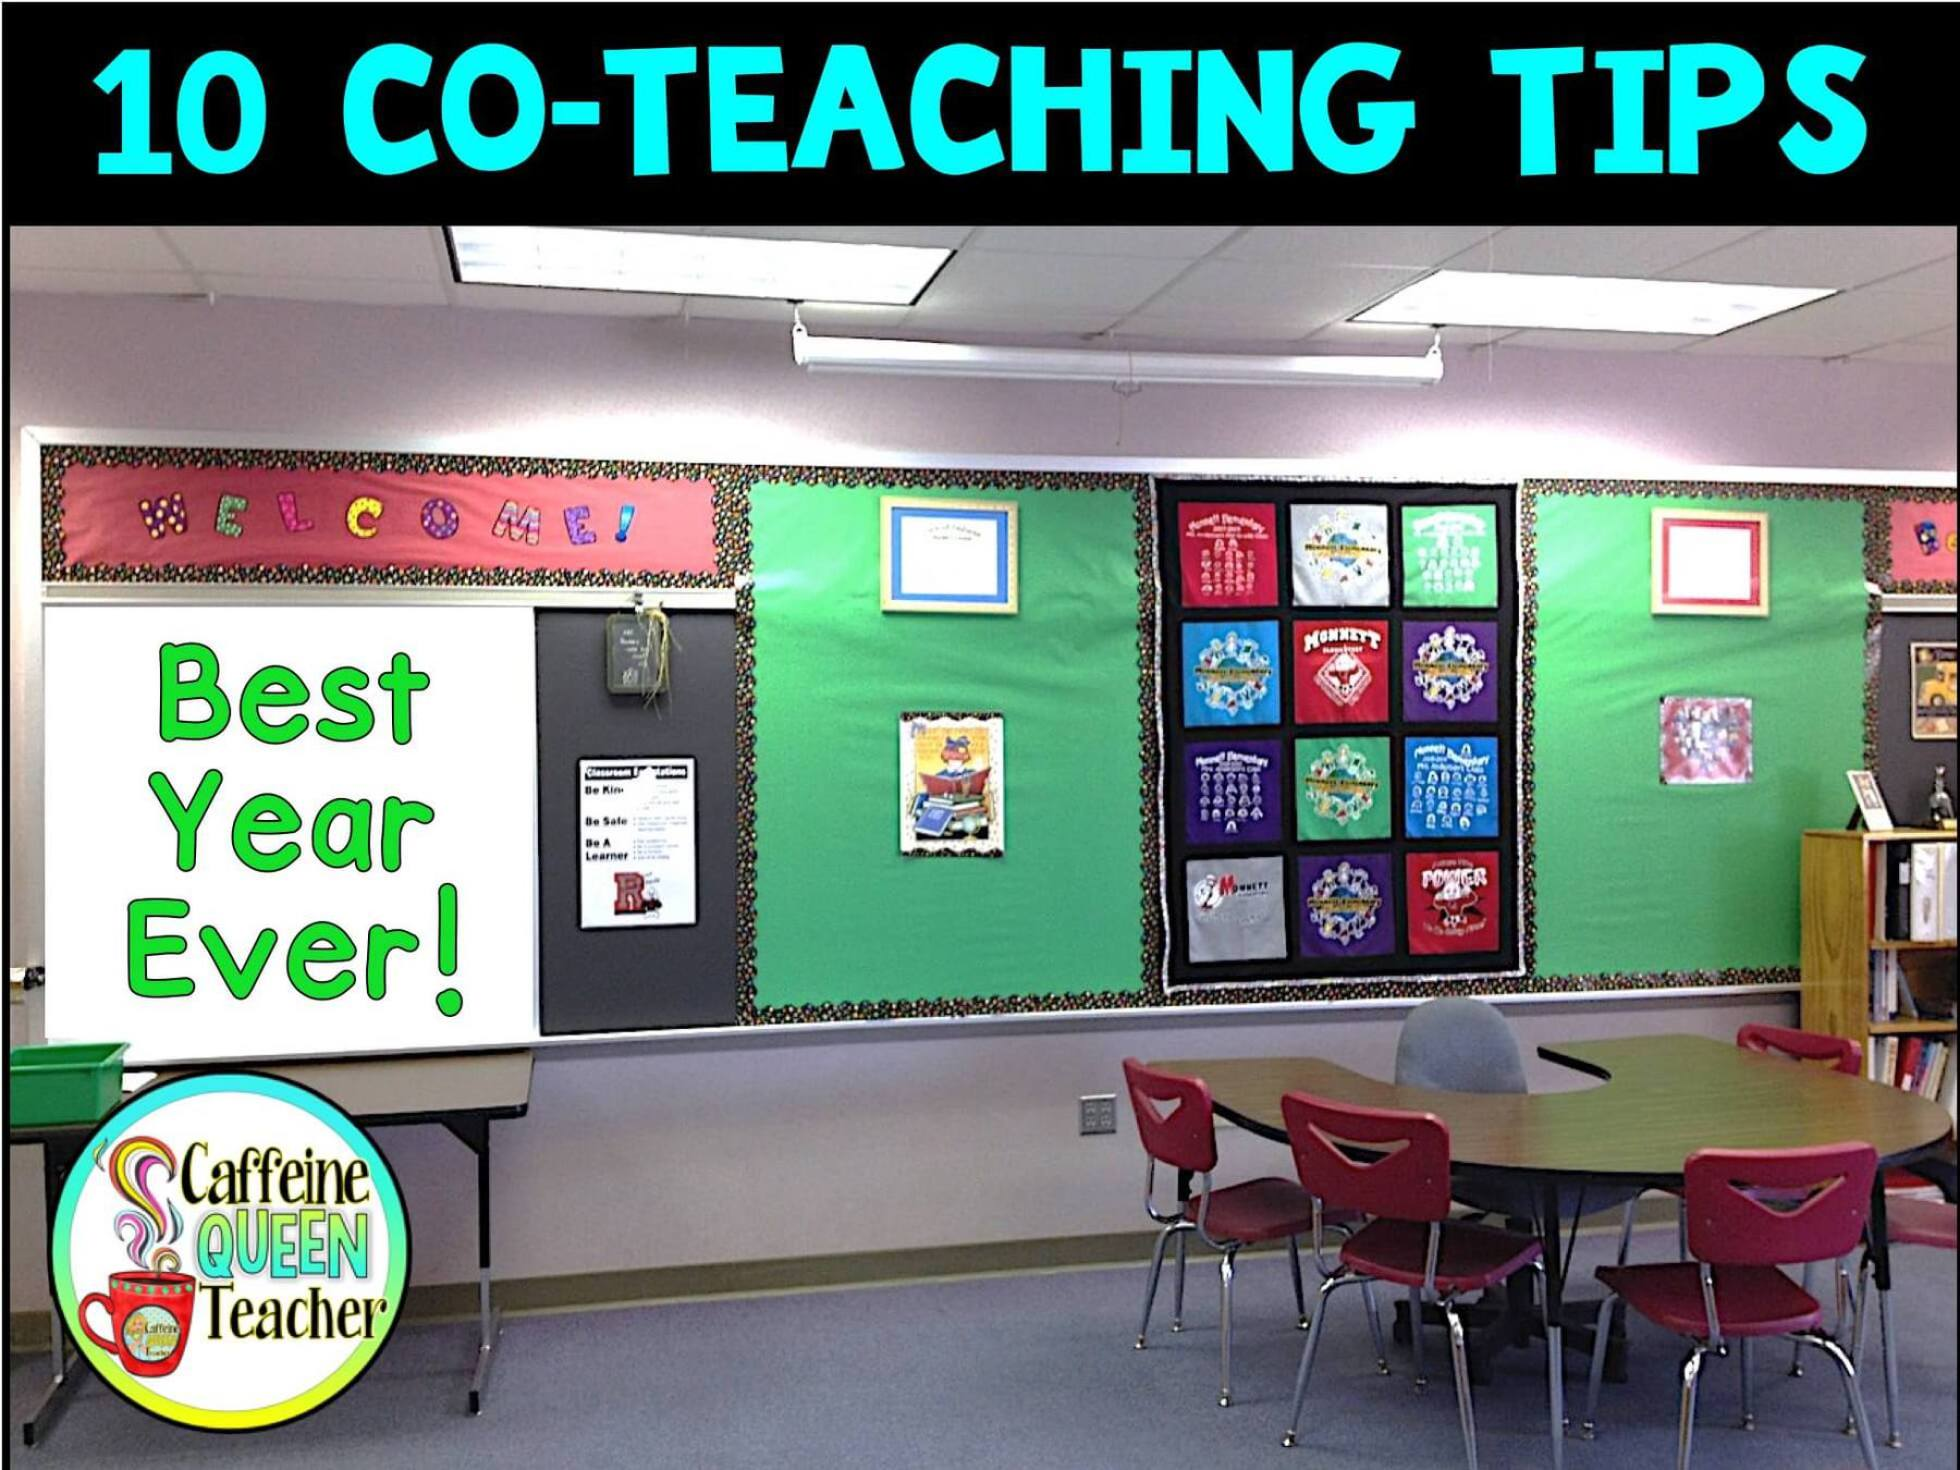 Co-Teaching Tips for the Best Year Ever!